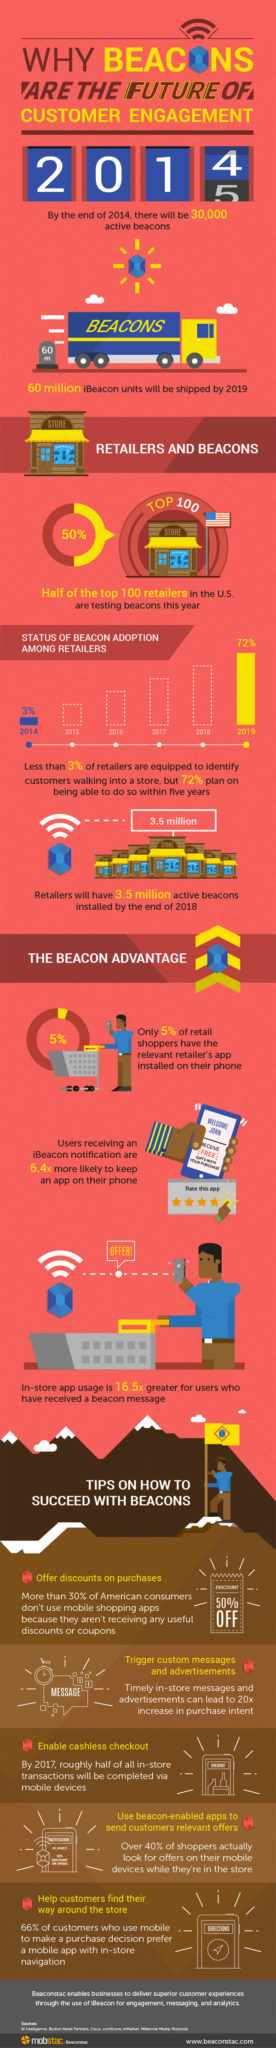 The State of Beacons in Retail 2014 [Infographic]